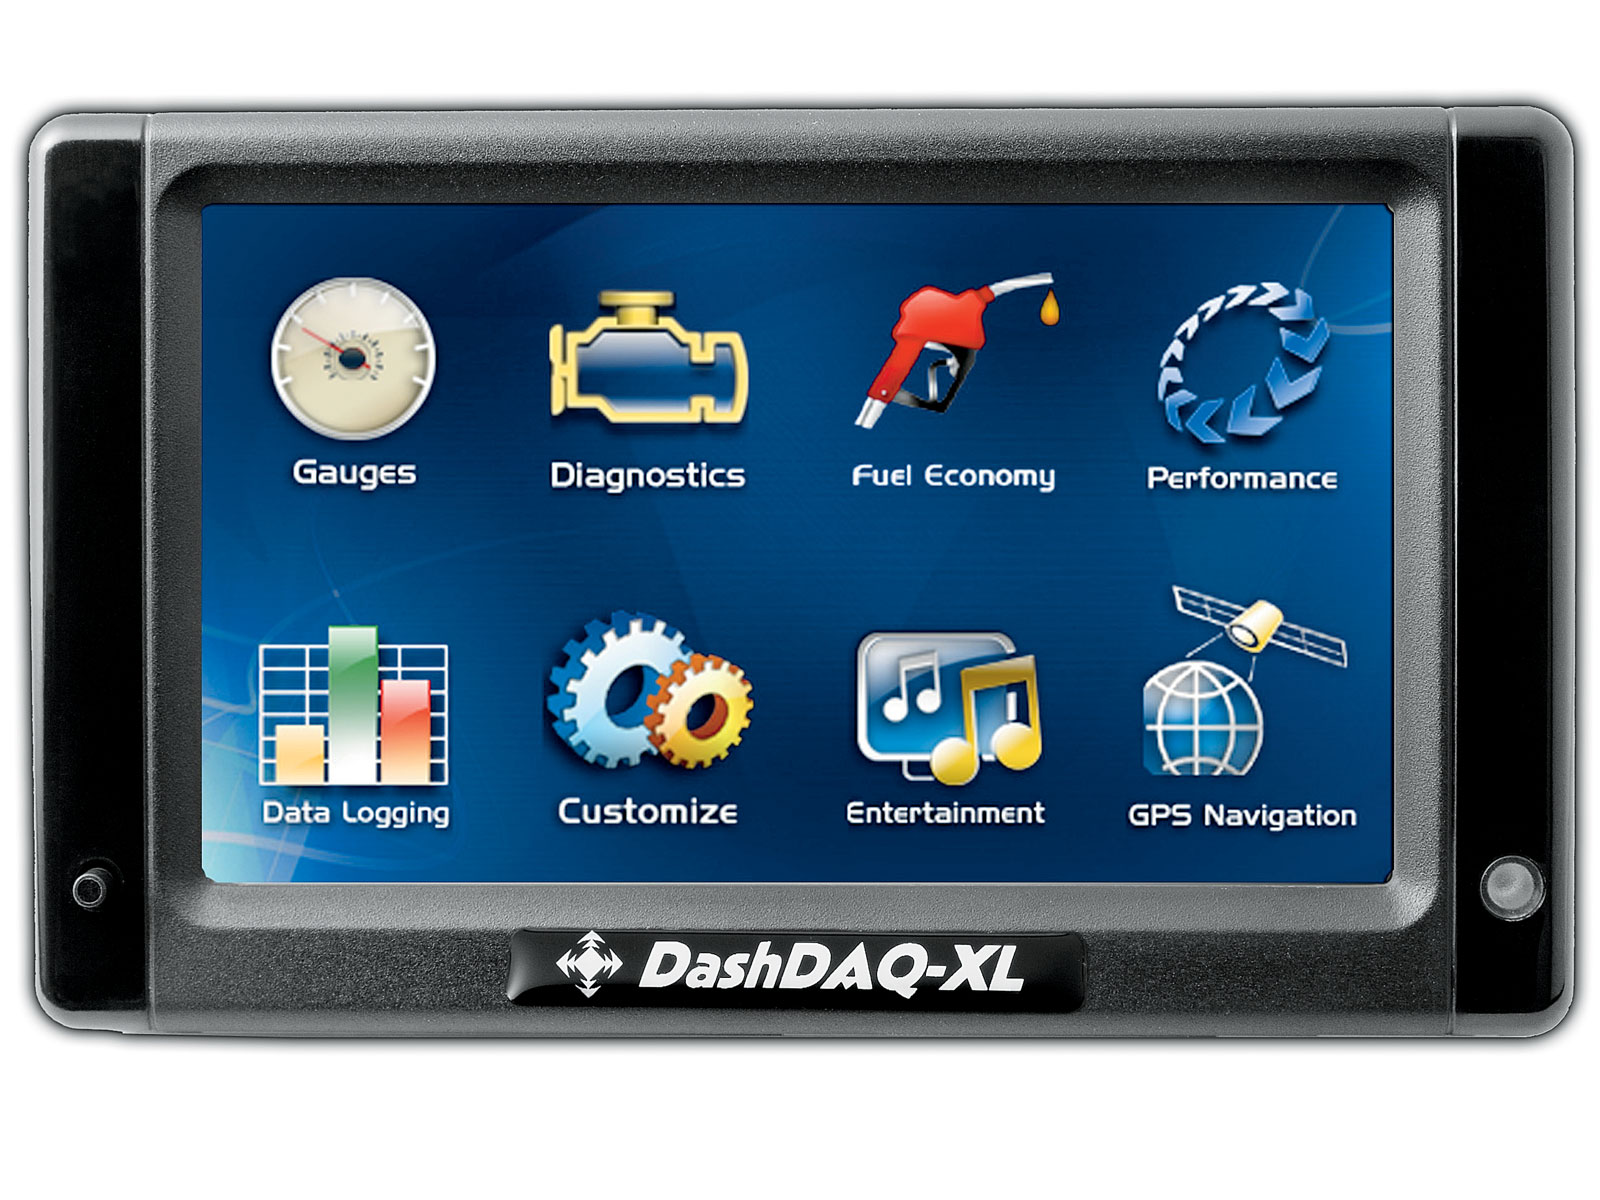 1004or 05 o+drew technologies dashdaq xl+main menu screen